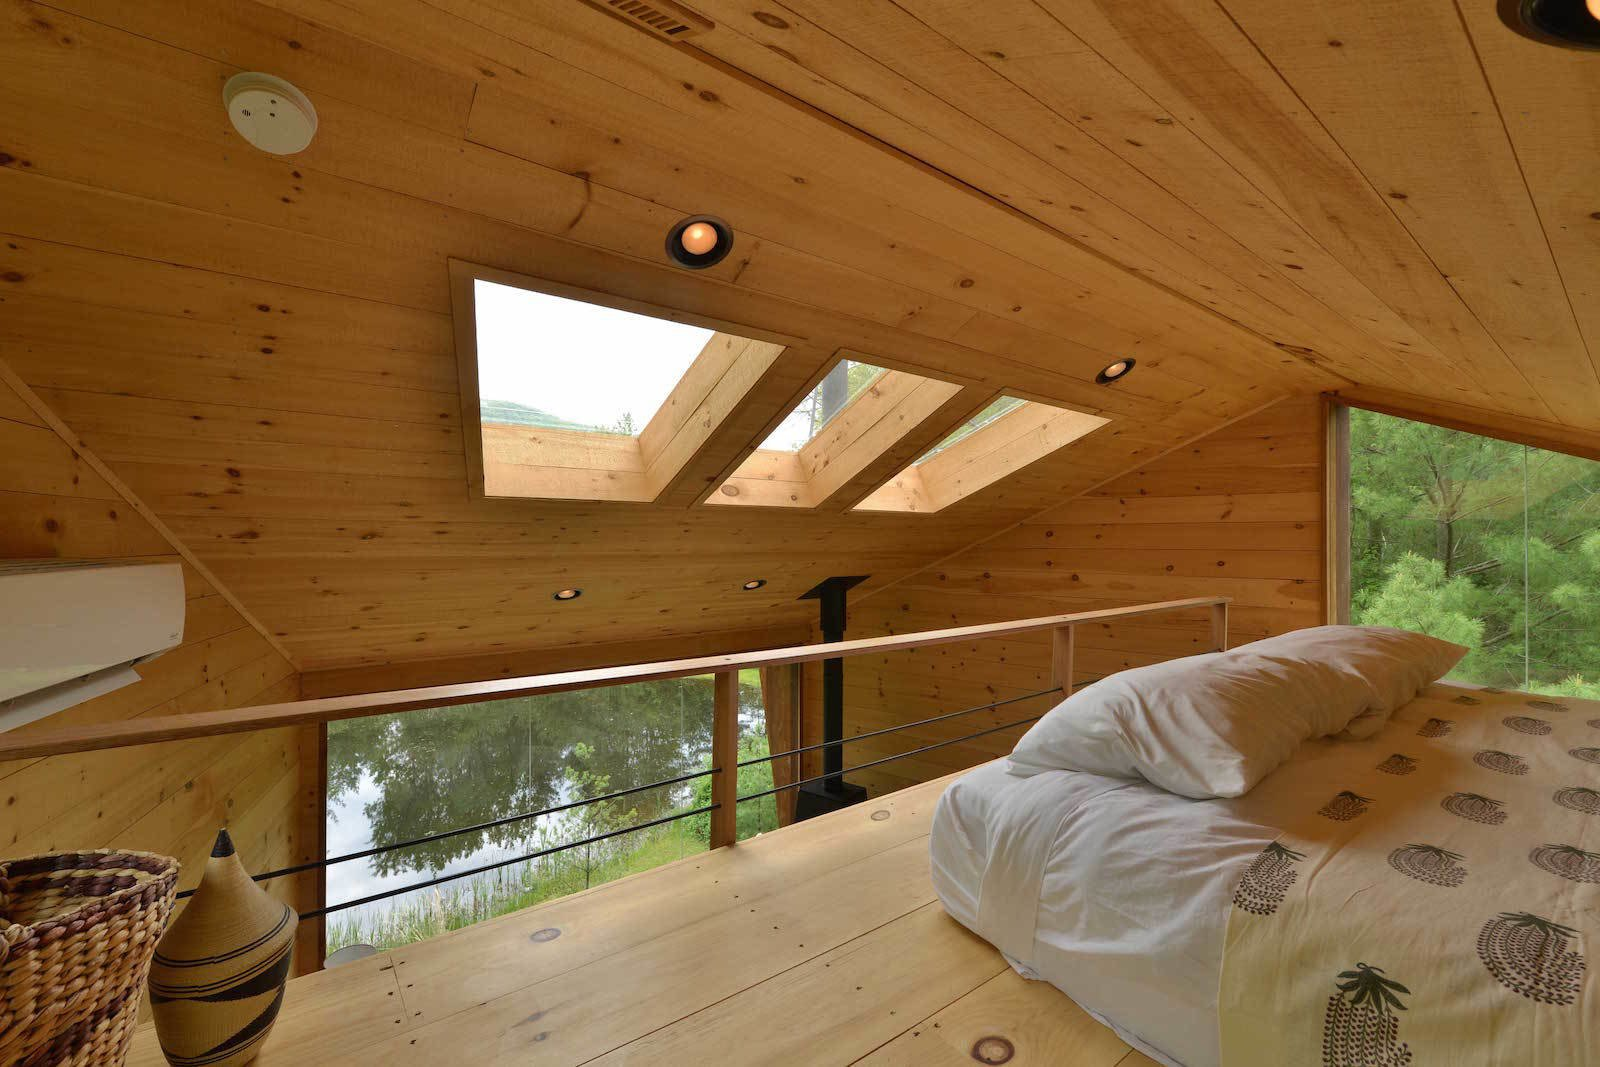 Bedroom, Bed, Recessed Lighting, and Medium Hardwood Floor  Photo 10 of 11 in Sleep in This Romantic Tree House Just Outside NYC